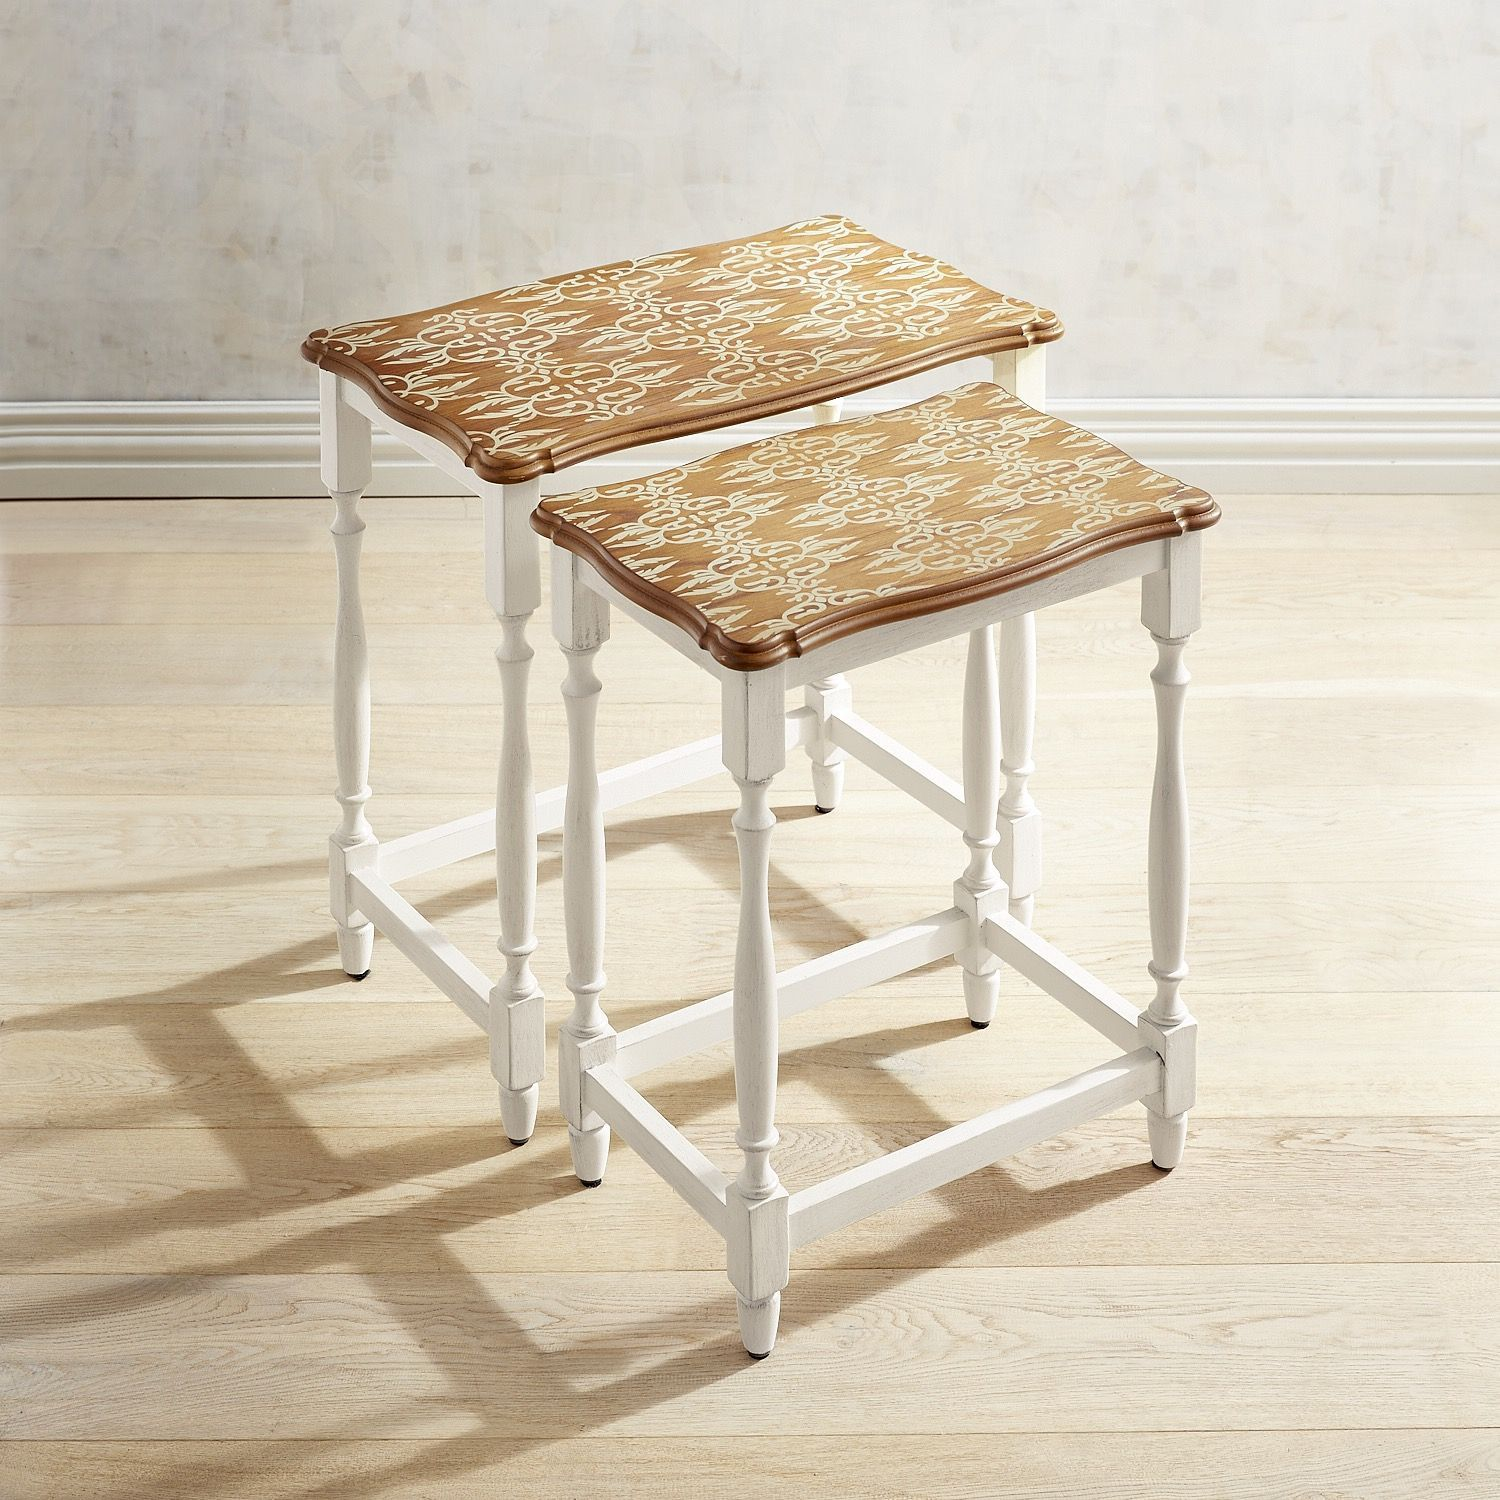 Pattern Top Wood Nesting Tables White